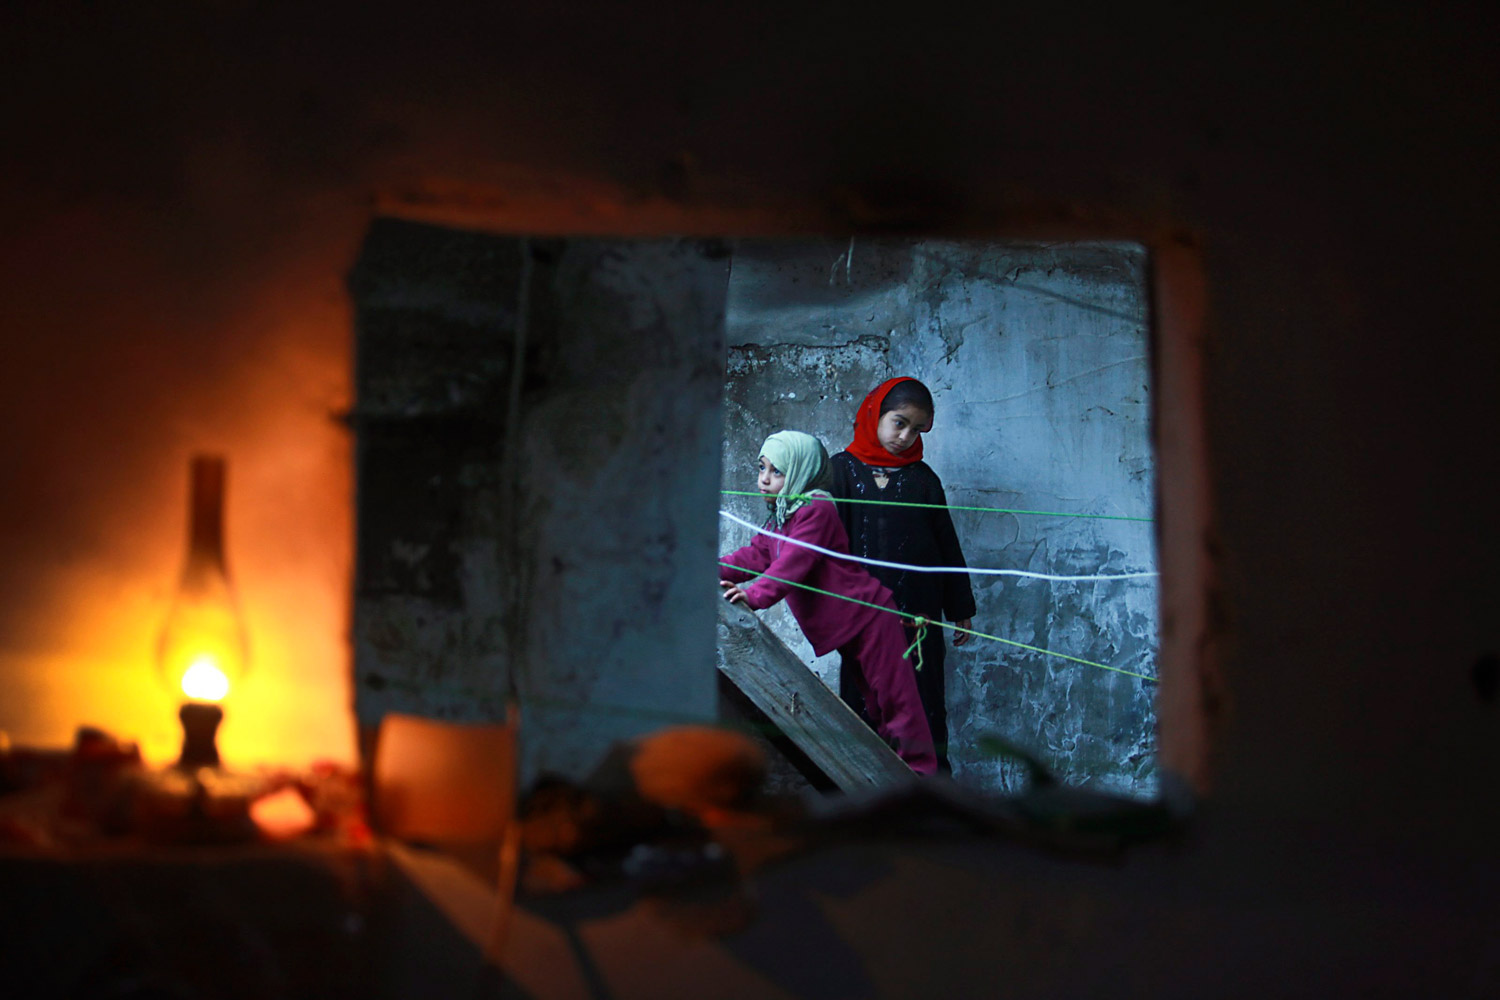 February 7, 2012. Palestinian girls are seen through a window of their familiy's home during an electricity power cut in the Jabaliya refugee camp, Gaza Strip.